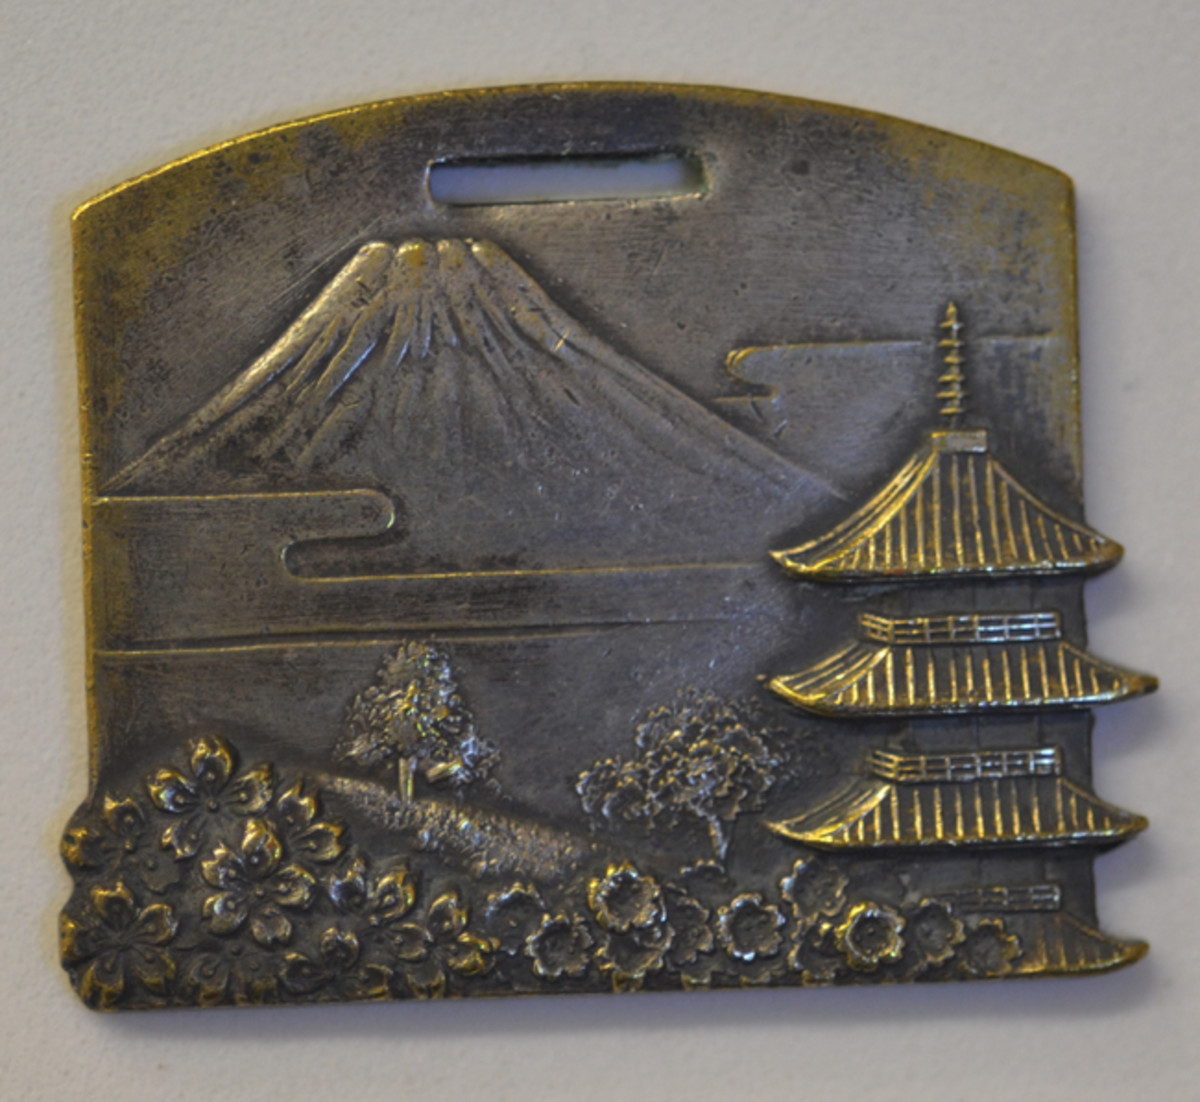 One of the early Japanese Occupation souvenir medals is rectangular and depicts Mt. Fuji and cherry blossoms.